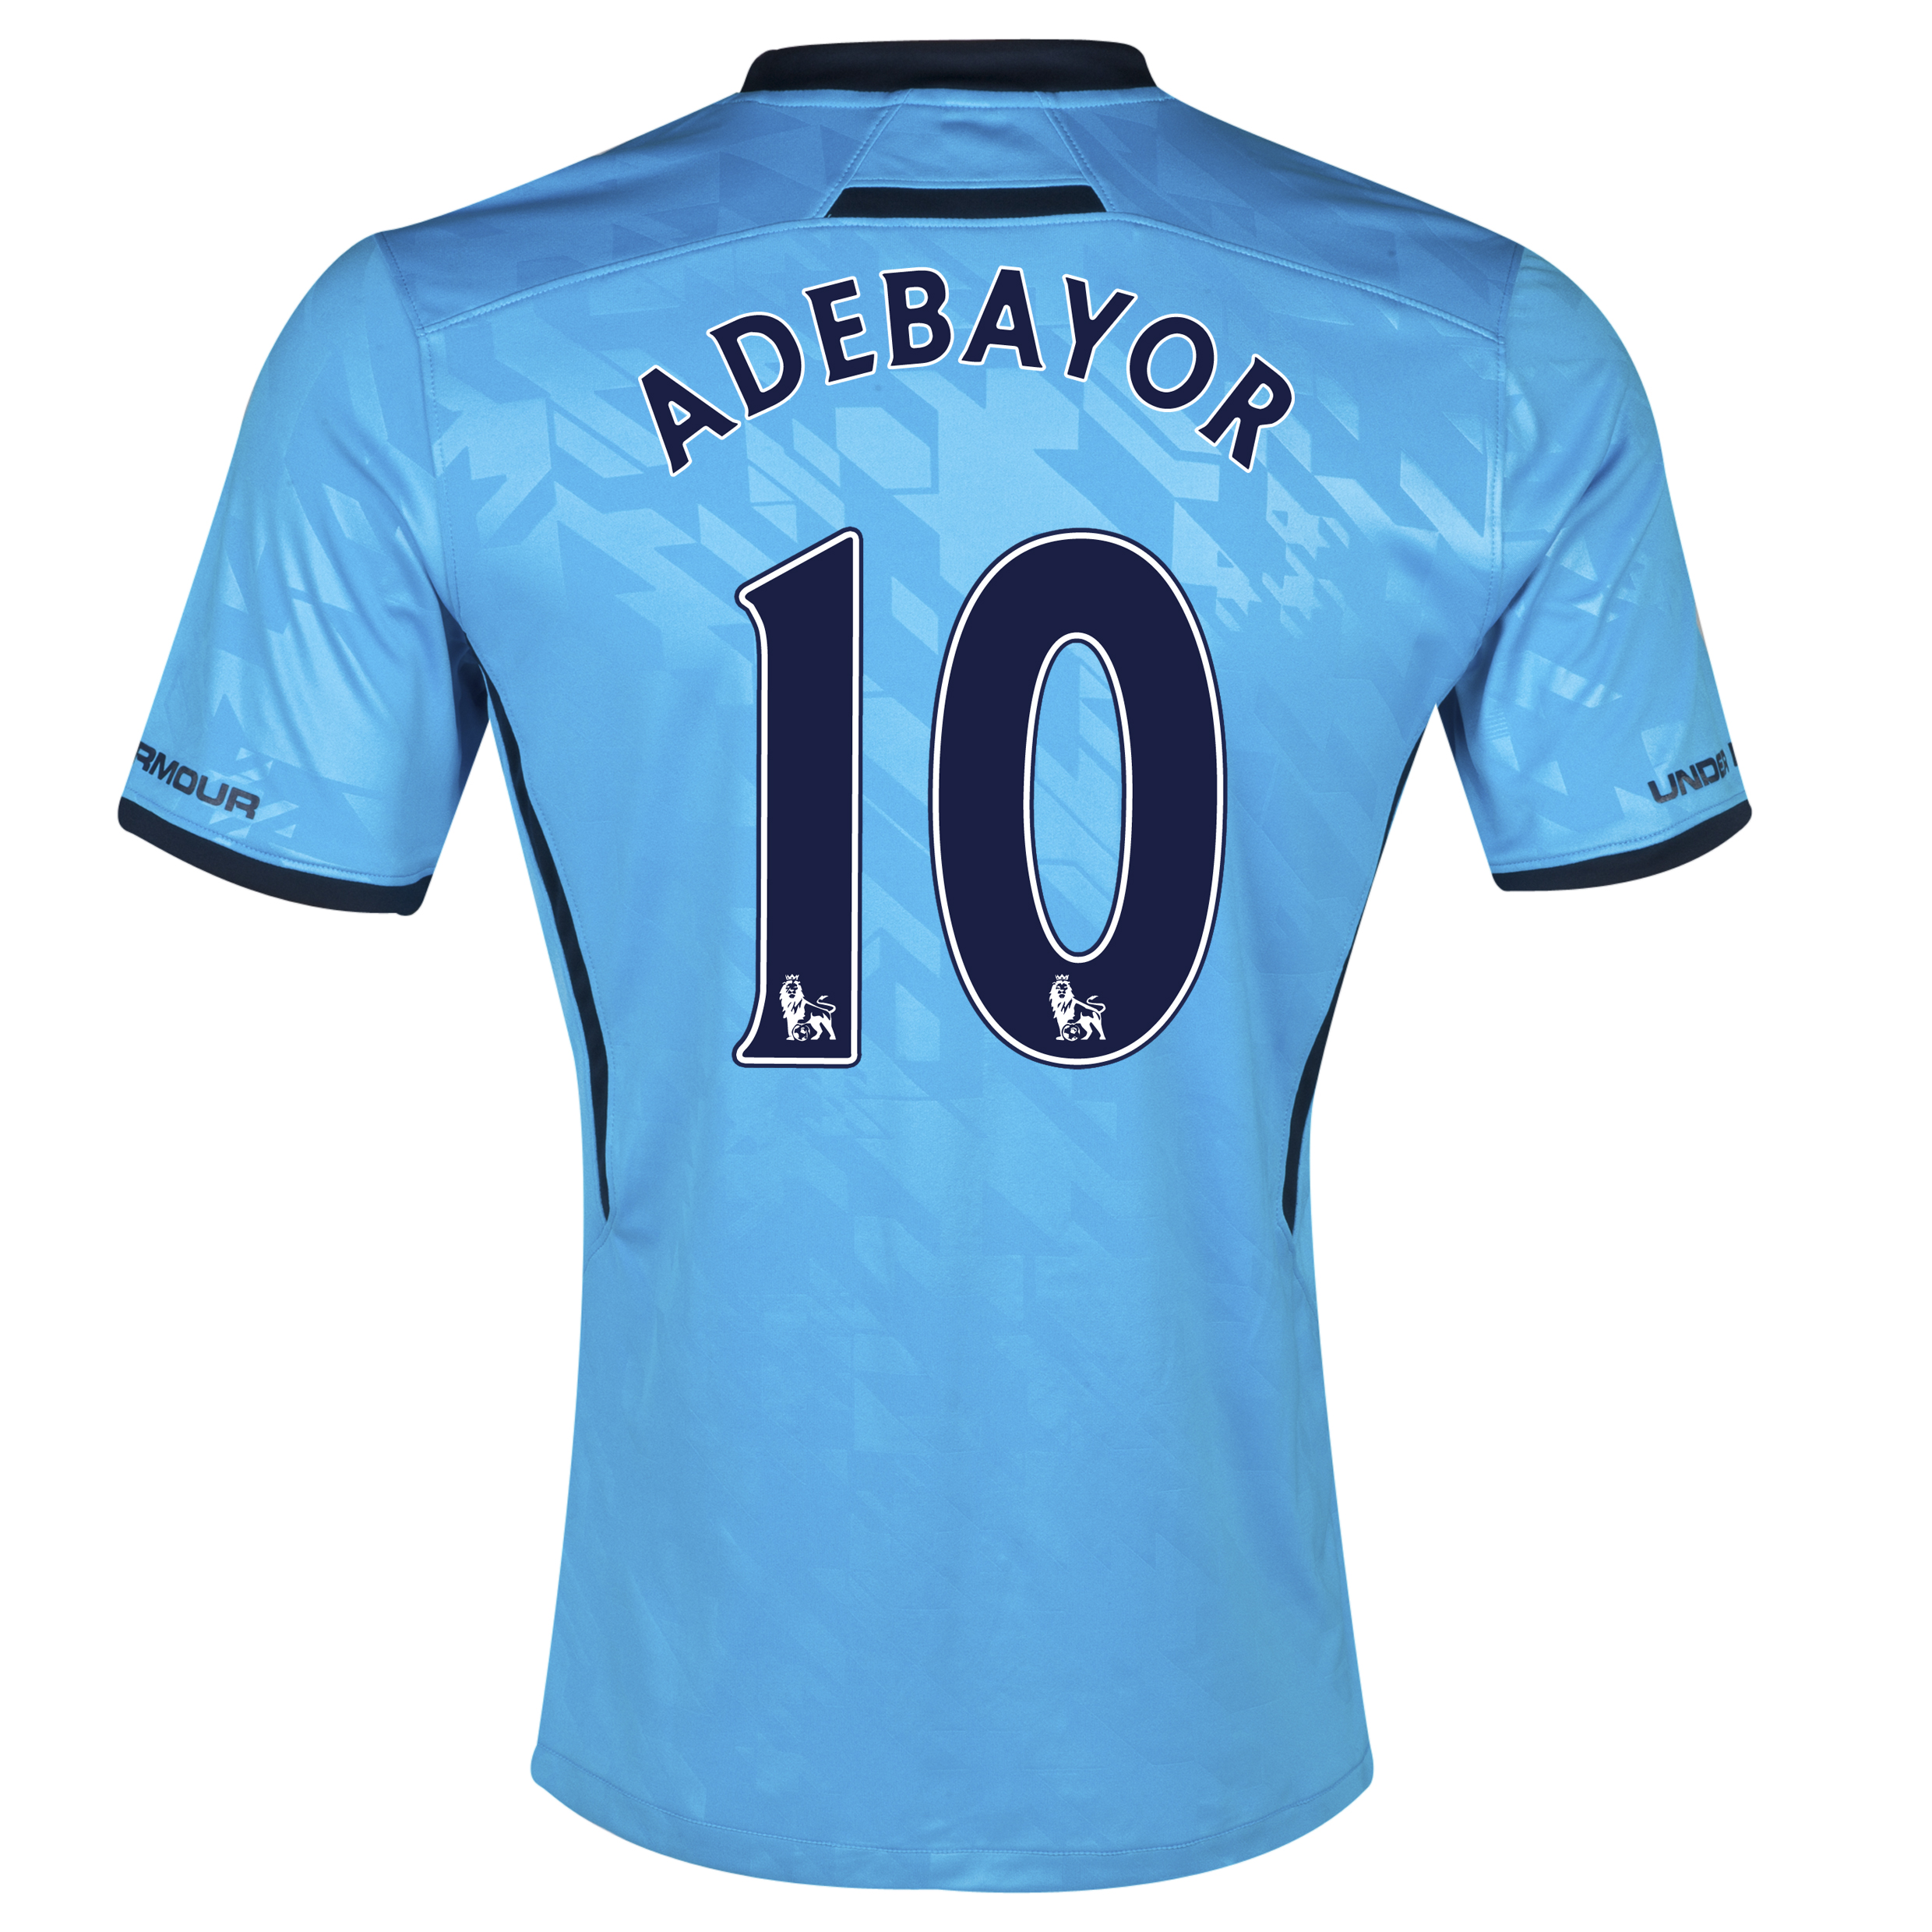 Tottenham Hotspur Away Shirt 2013/14 with Adebayor 10 printing